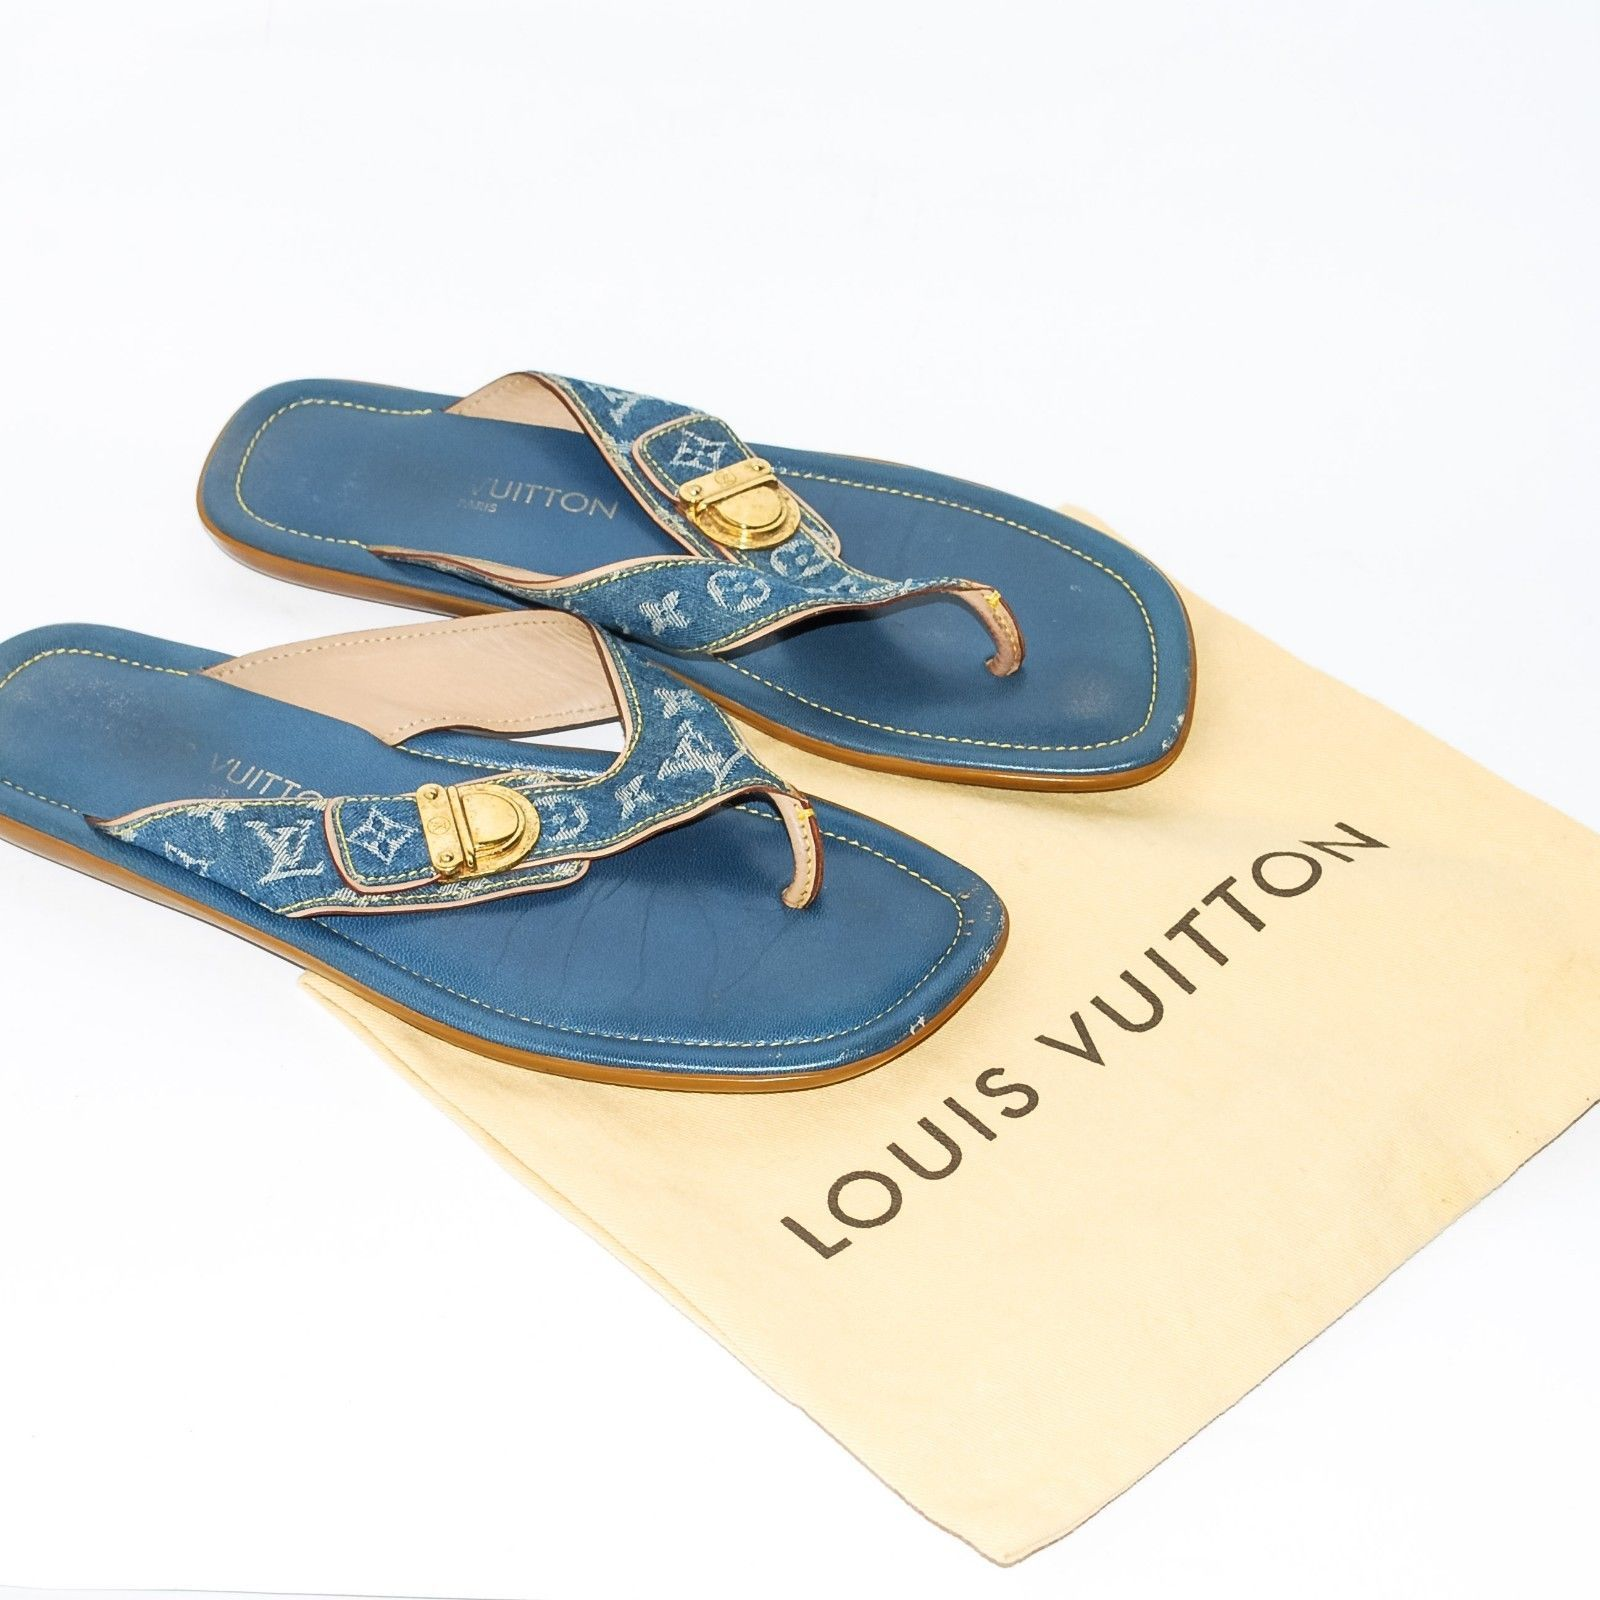 5997405068c S l1600. S l1600. Previous. LOUIS VUITTON Jean Leather Thong Flat Sandals  Block Heel Beach Shoes ...